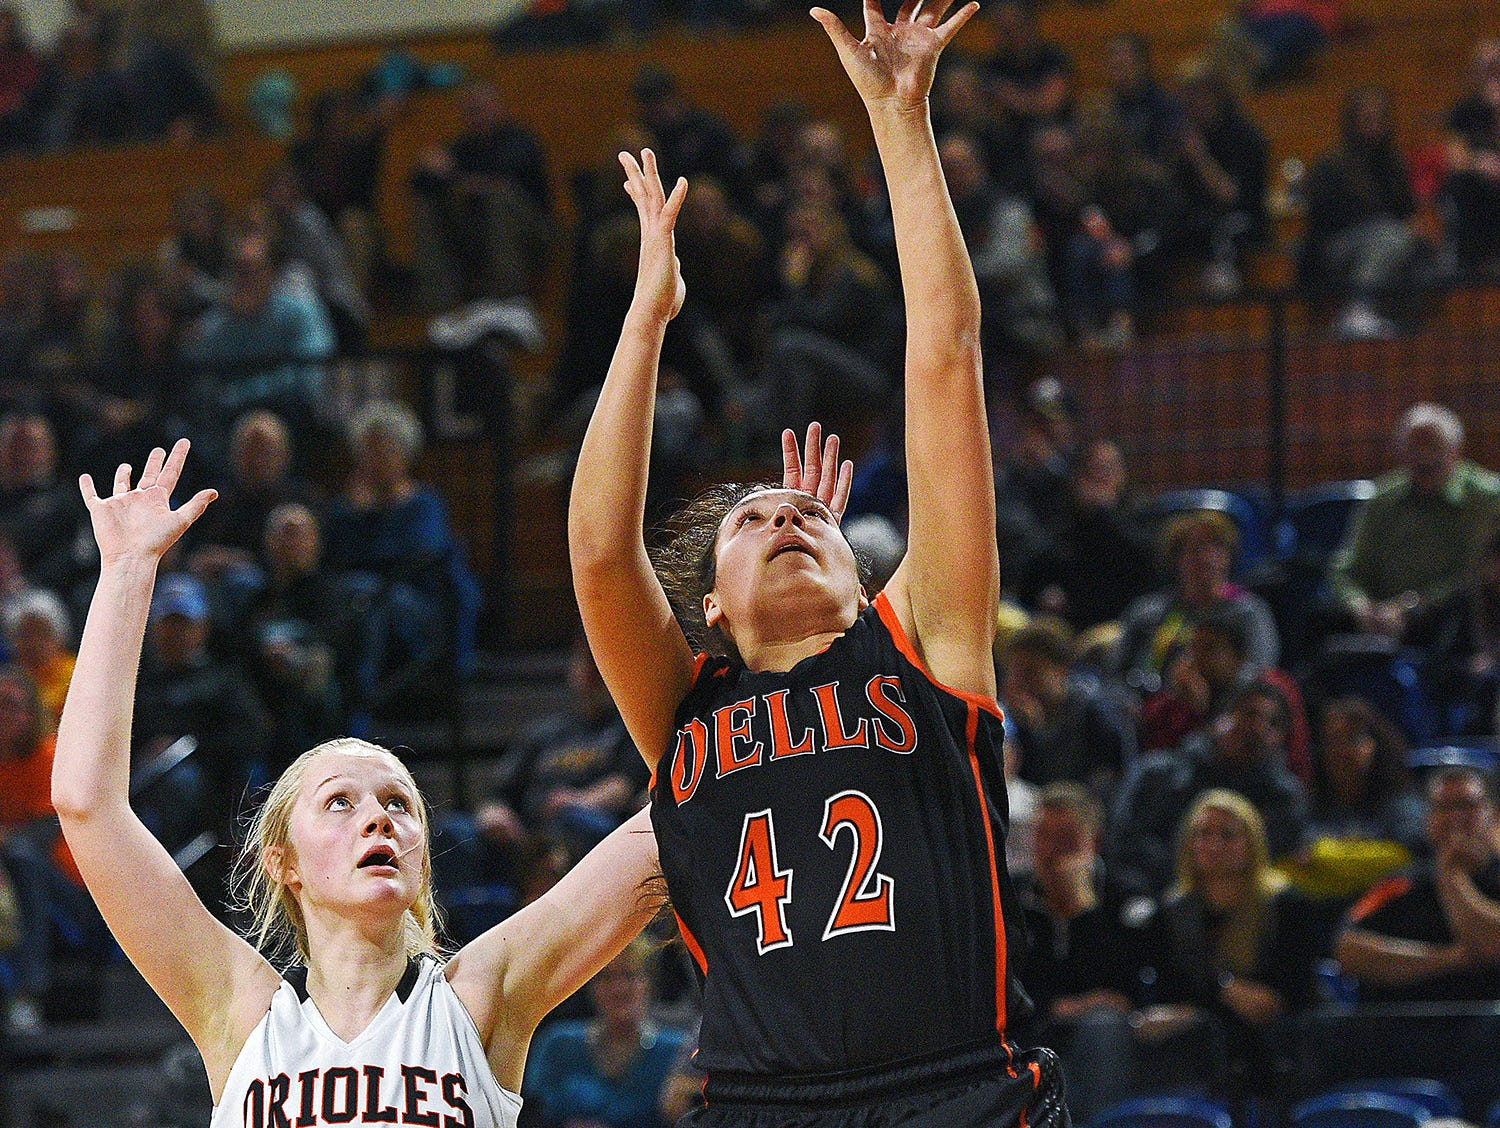 Dell Rapids' Jayda Knuppe (42) goes up for a shot in front of Lennox's Madysen Vlastuin (10) during a 2017 SDHSAA Class A State Girls Basketball Tournament quarterfinal game Thursday, March 9, 2017, at Frost Arena on the South Dakota State University campus in Brookings, S.D.